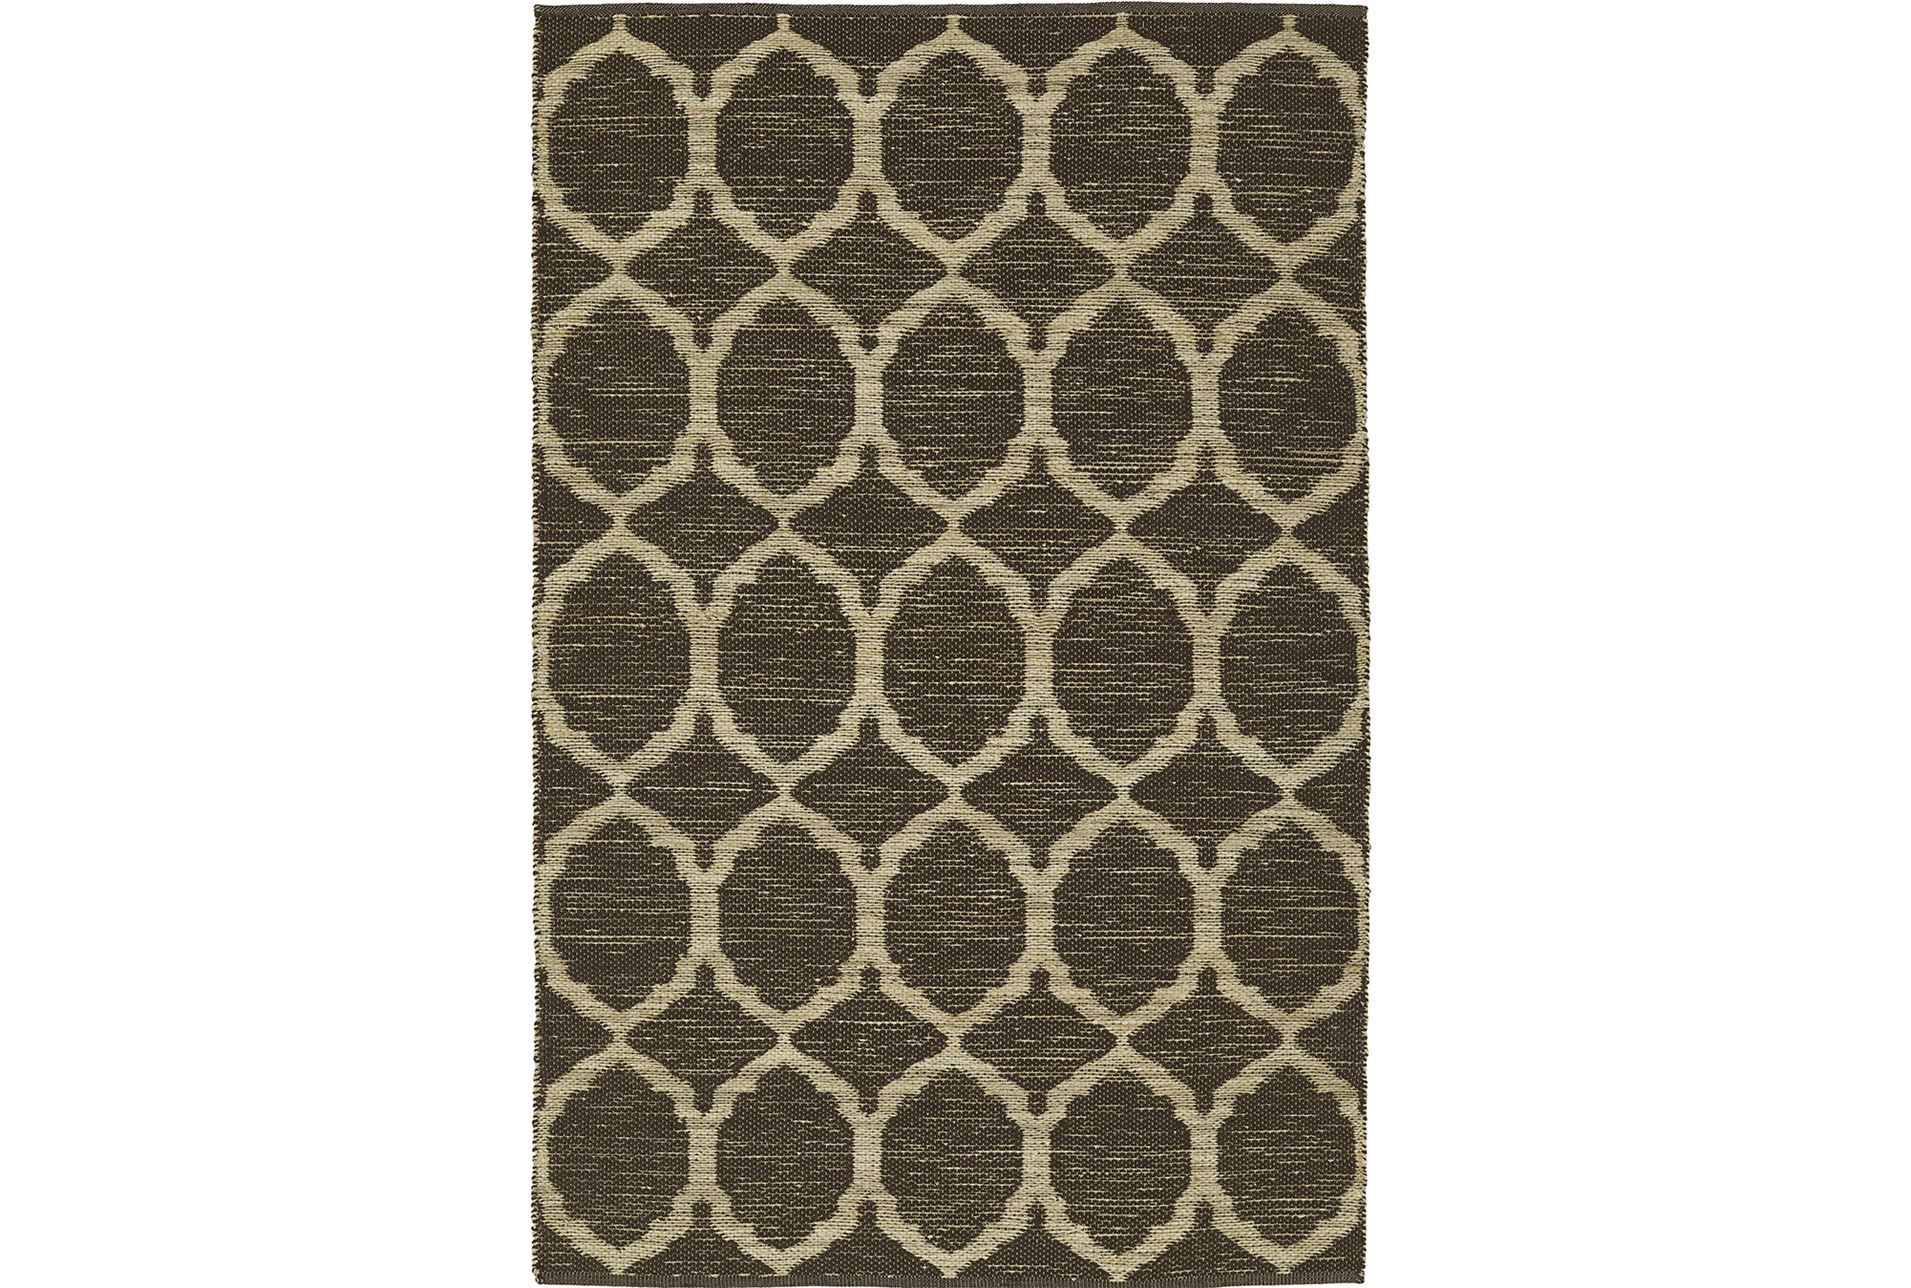 96x120 rug solstice jute chocolate living spaces for Living spaces rugs